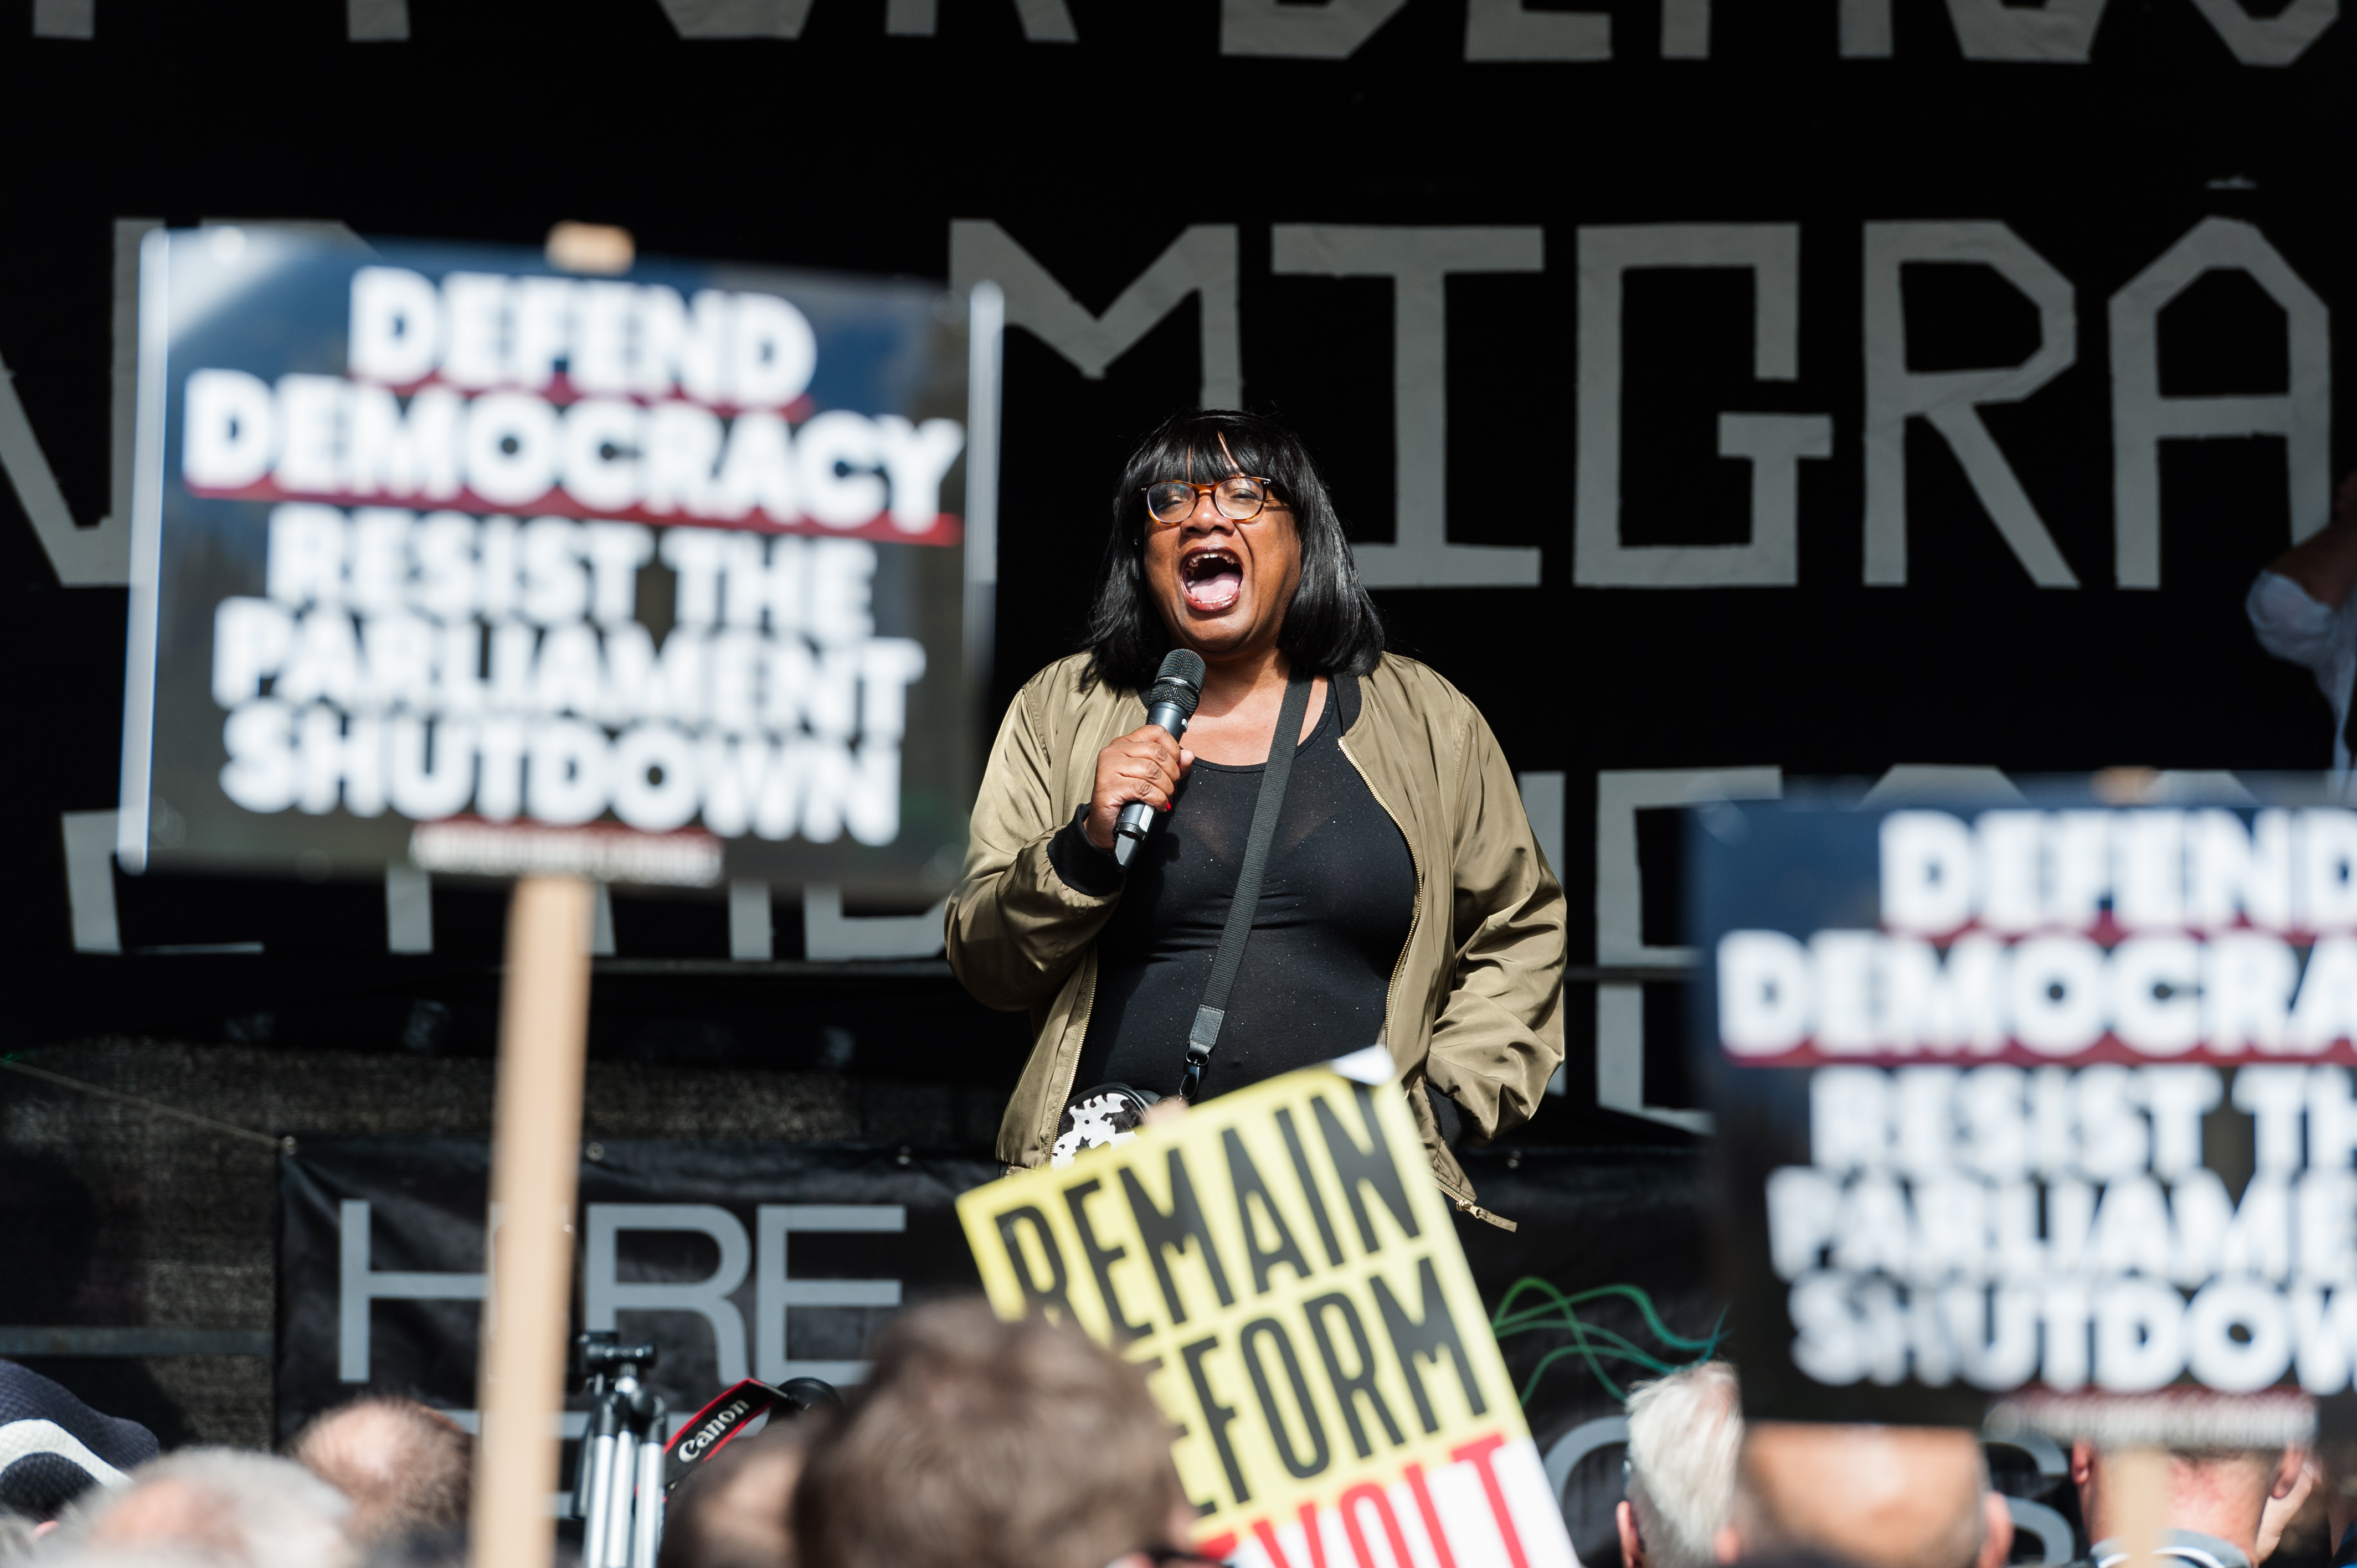 Shadow Home Secretary Diane Abbott speaks to thousands of demonstrators gathered outside Downing Street on 31 August, 2019 in London, England to take part in Stop the Coup protests against the prorogation of the UK Parliament. Hundreds of thousands of people across major cities in the UK are expected to join protests against Boris Johnson's plans to suspend parliament for five weeks ahead of a Queens Speech on 14 October, which has limited the time available for MPs to legislate against a no-deal Brexit with the UK is set to leave the EU on the 31 October. (Photo by WIktor Szymanowicz/NurPhoto via Getty Images)